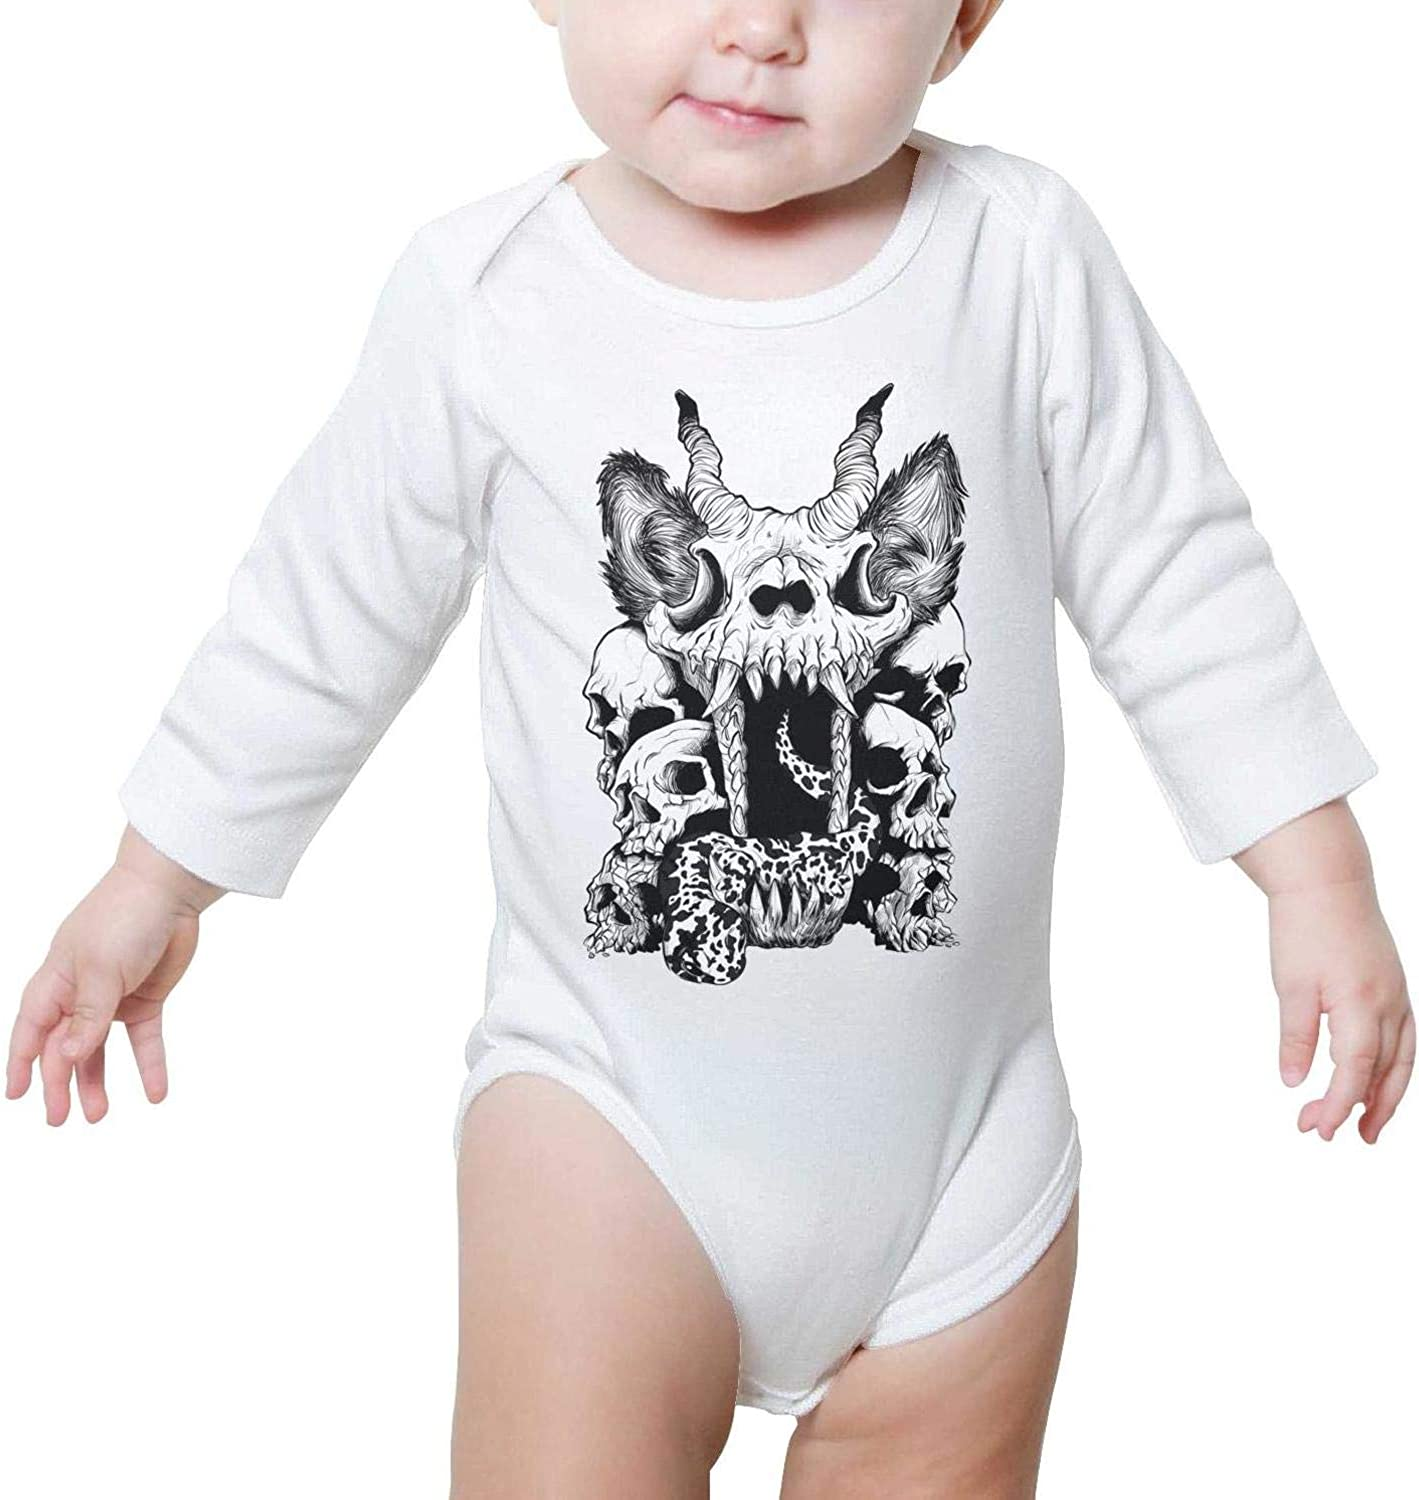 Lightning Skull Death Baby Onesies Clothes Bodysuits Long Sleeve Natural Organic Cotton Unique